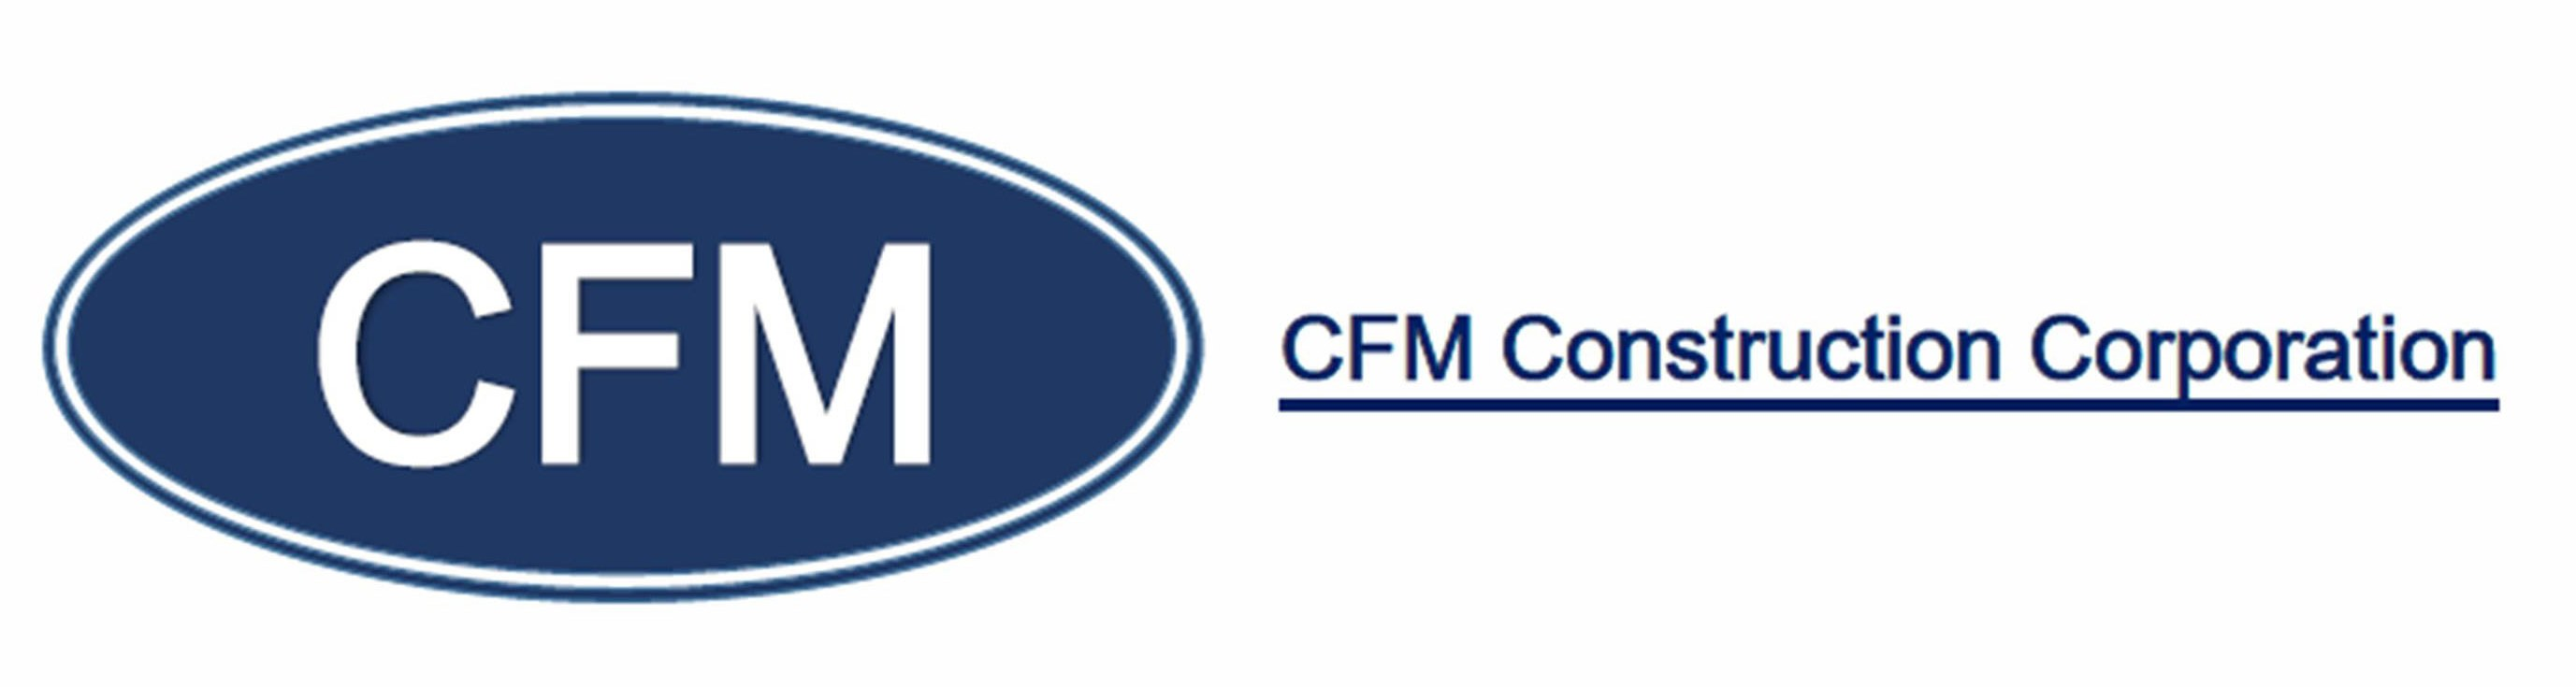 CFM Construction